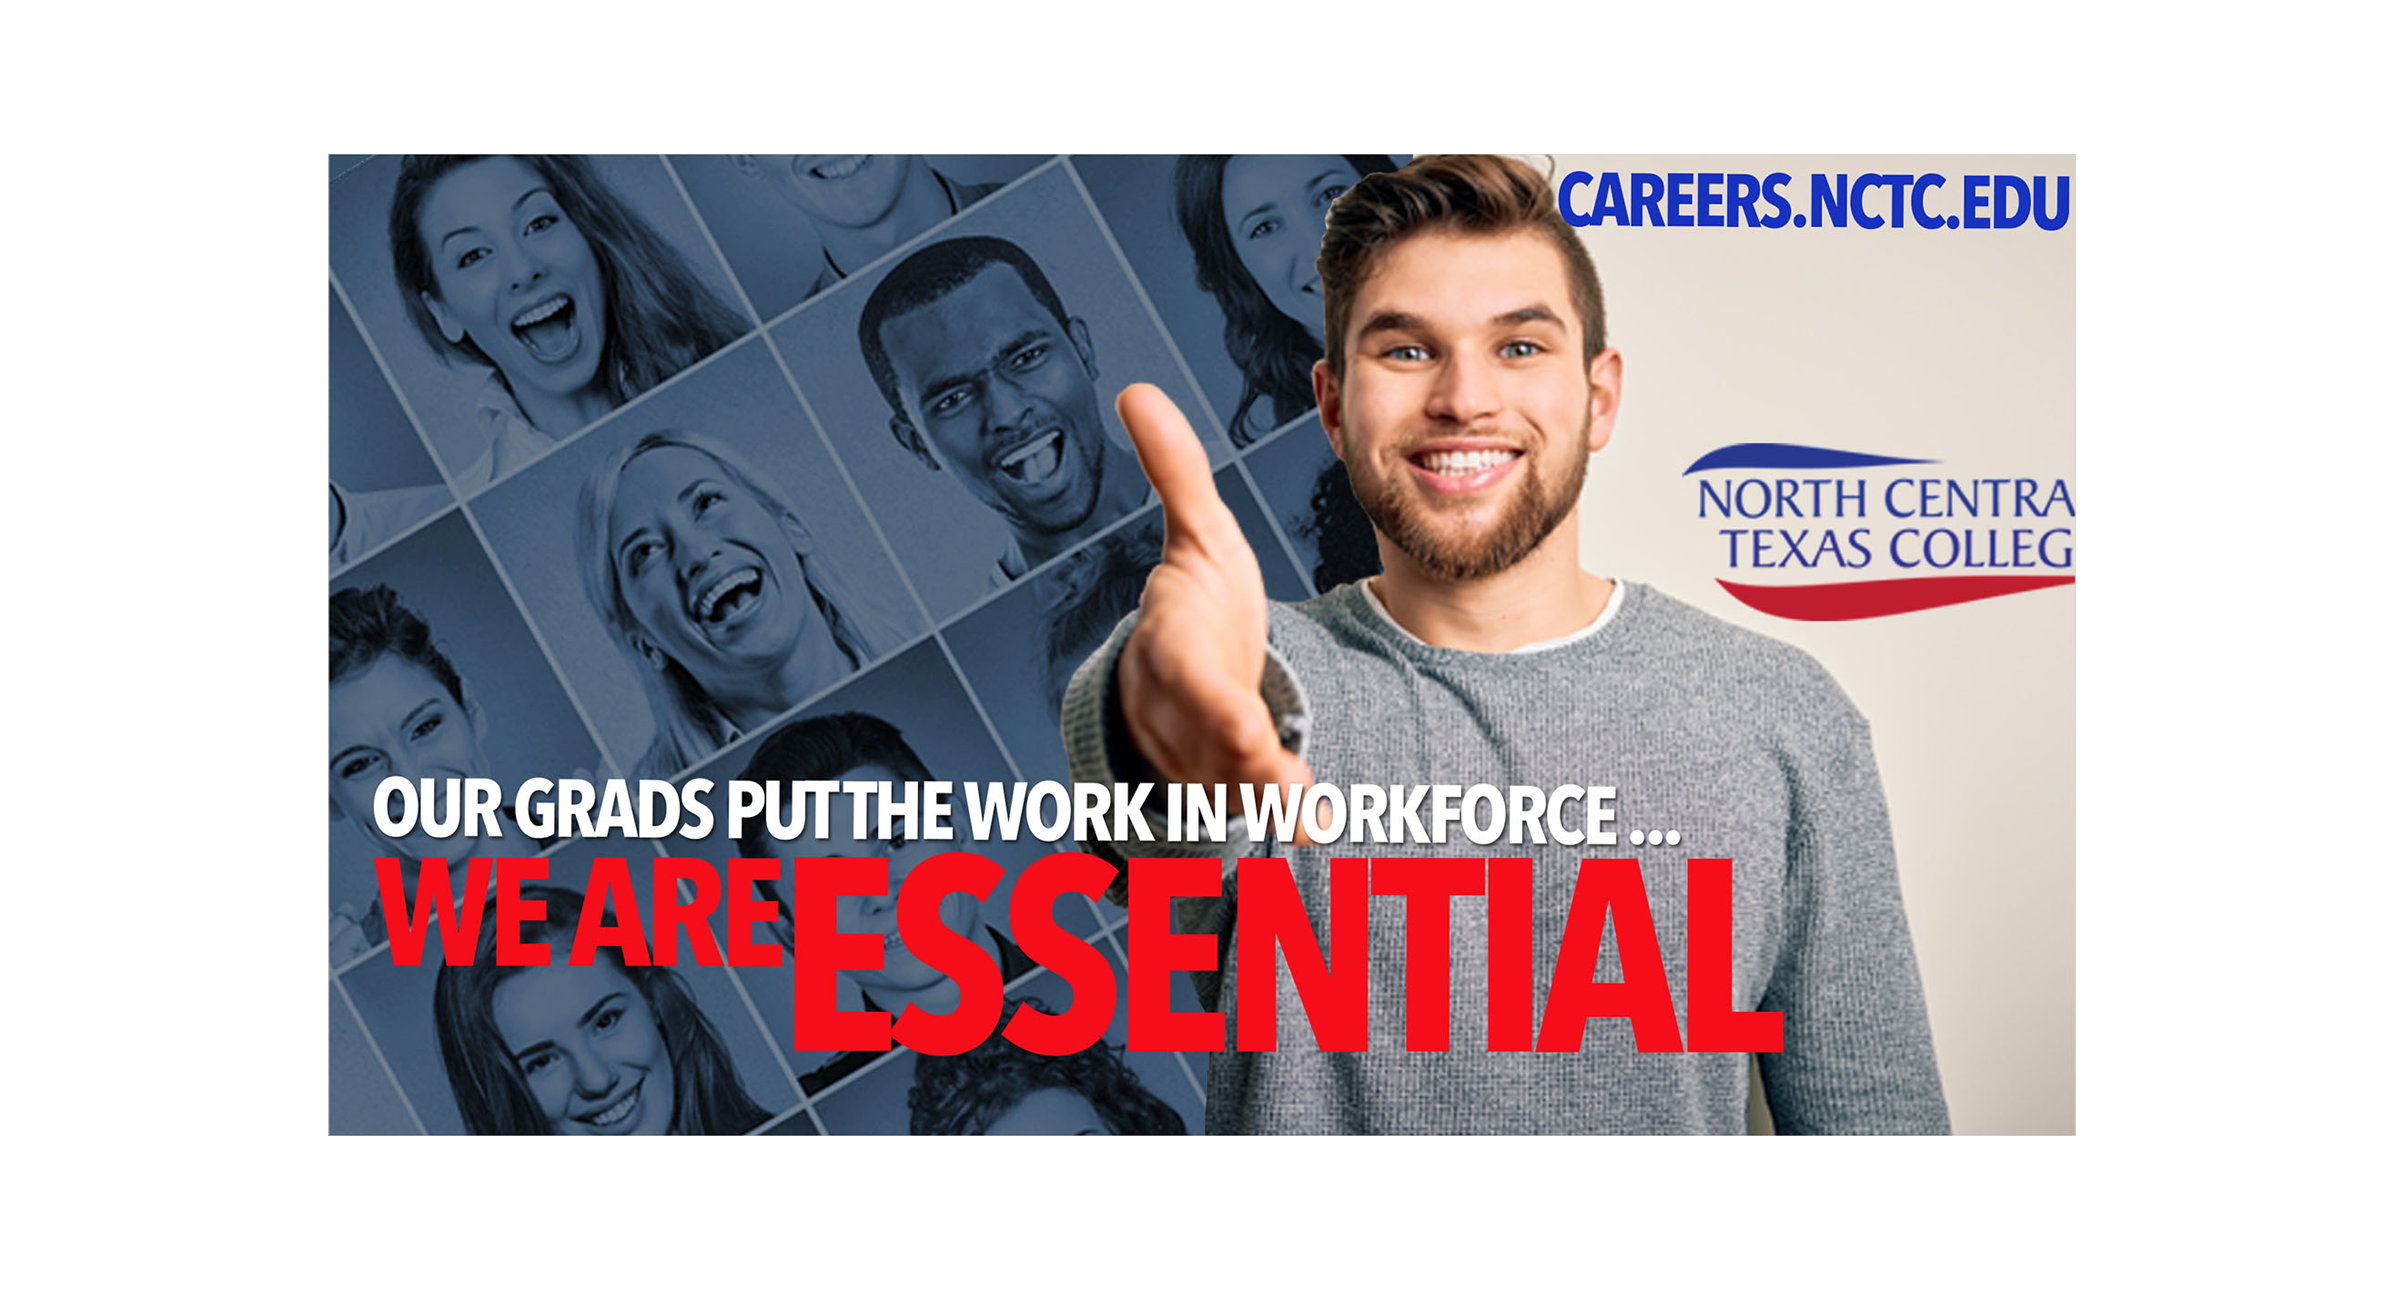 Our Grads Put the Work in Workforce... We Are Essential